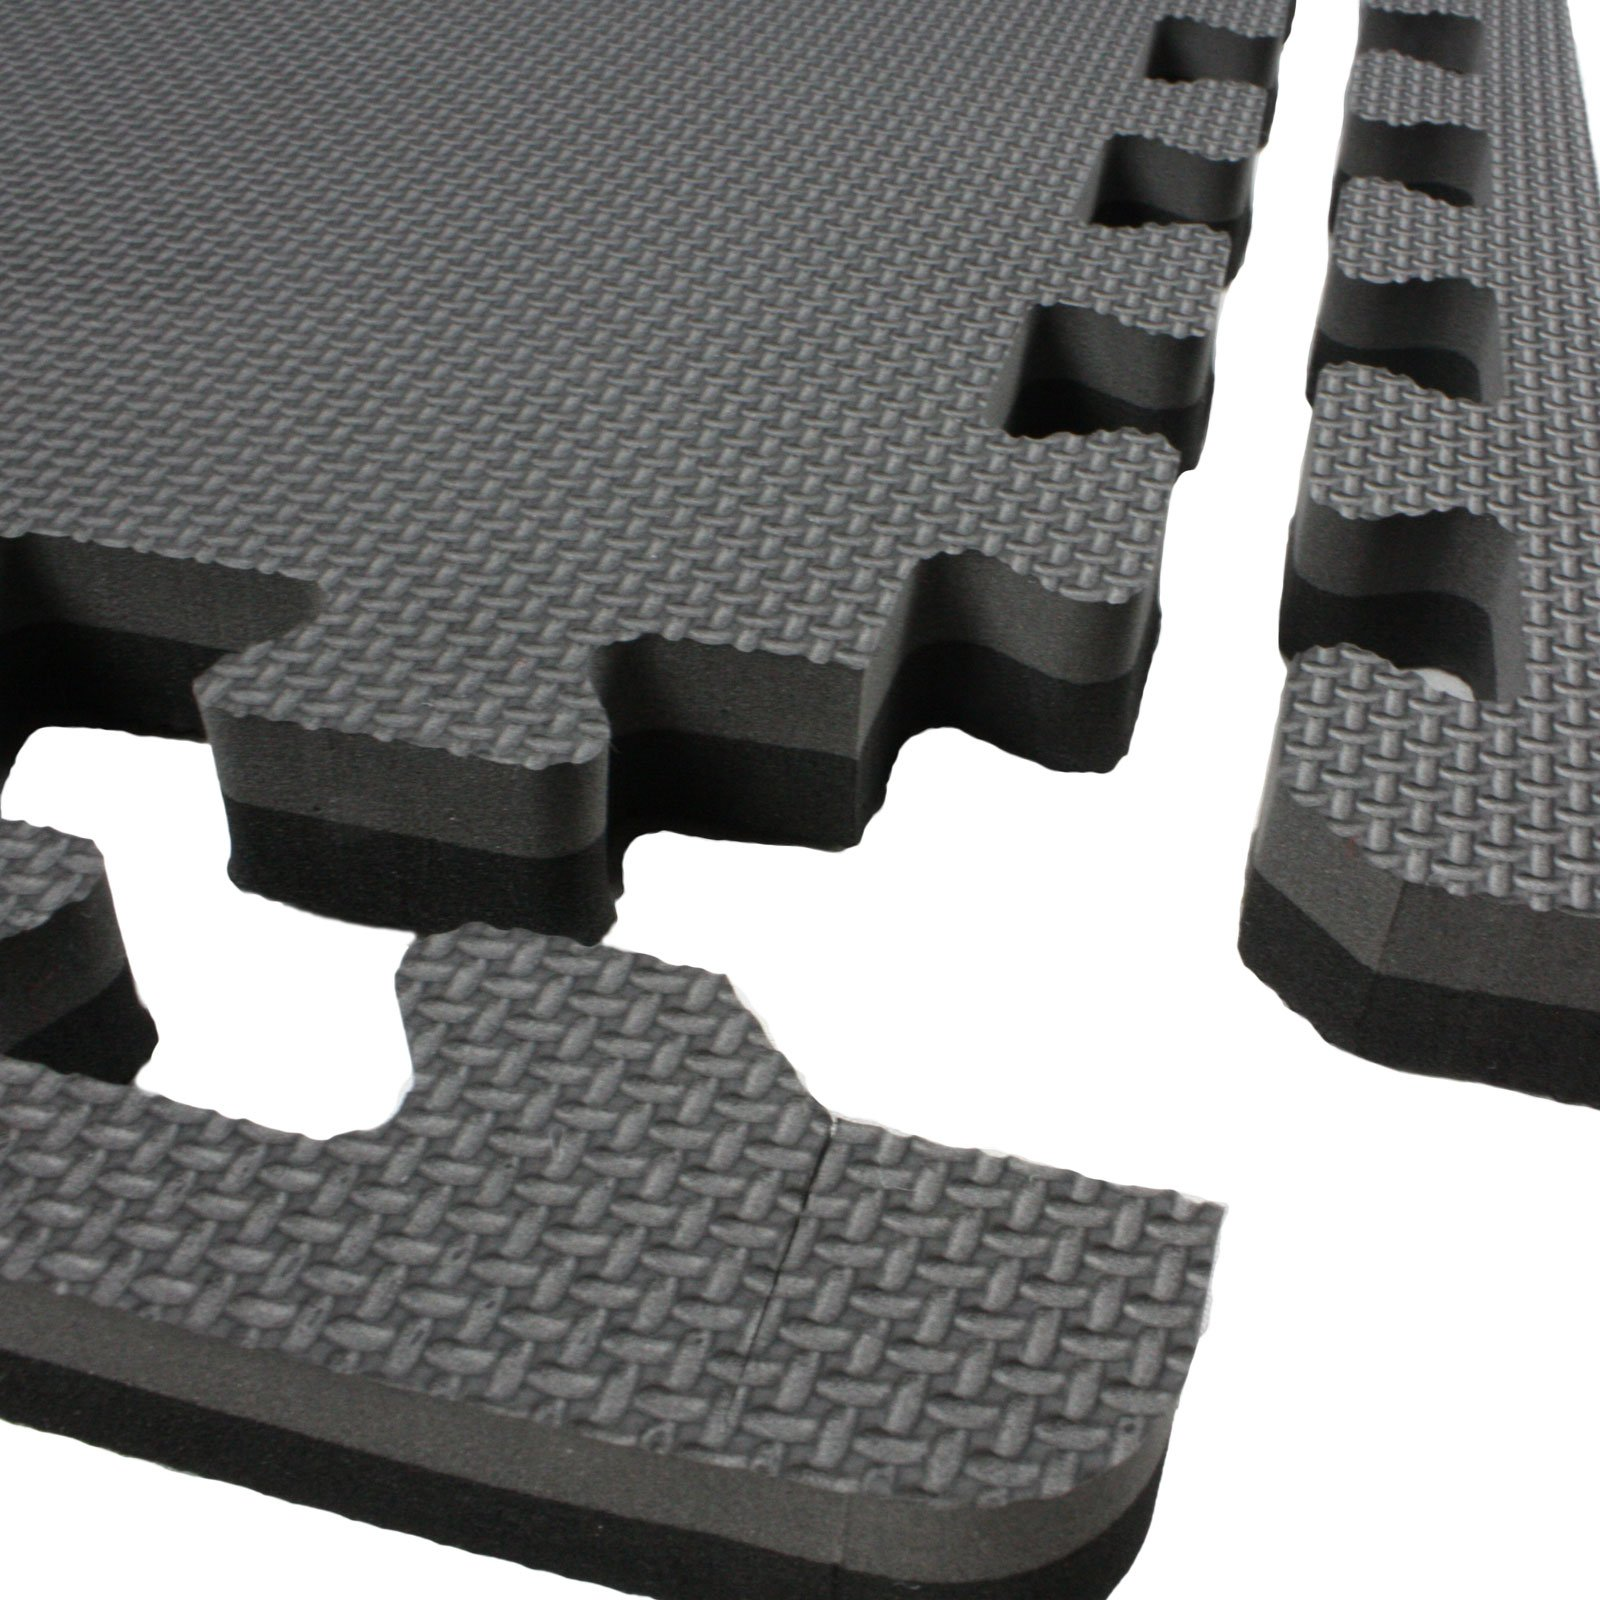 IncStores - Jumbo Soft Interlocking Foam Tiles (10 Tiles, Black/Grey) Perfect for Martial Arts, MMA, Lightweight Home Gyms, p90x, Gymnastics, Cardio, and Exercise by IncStores (Image #4)